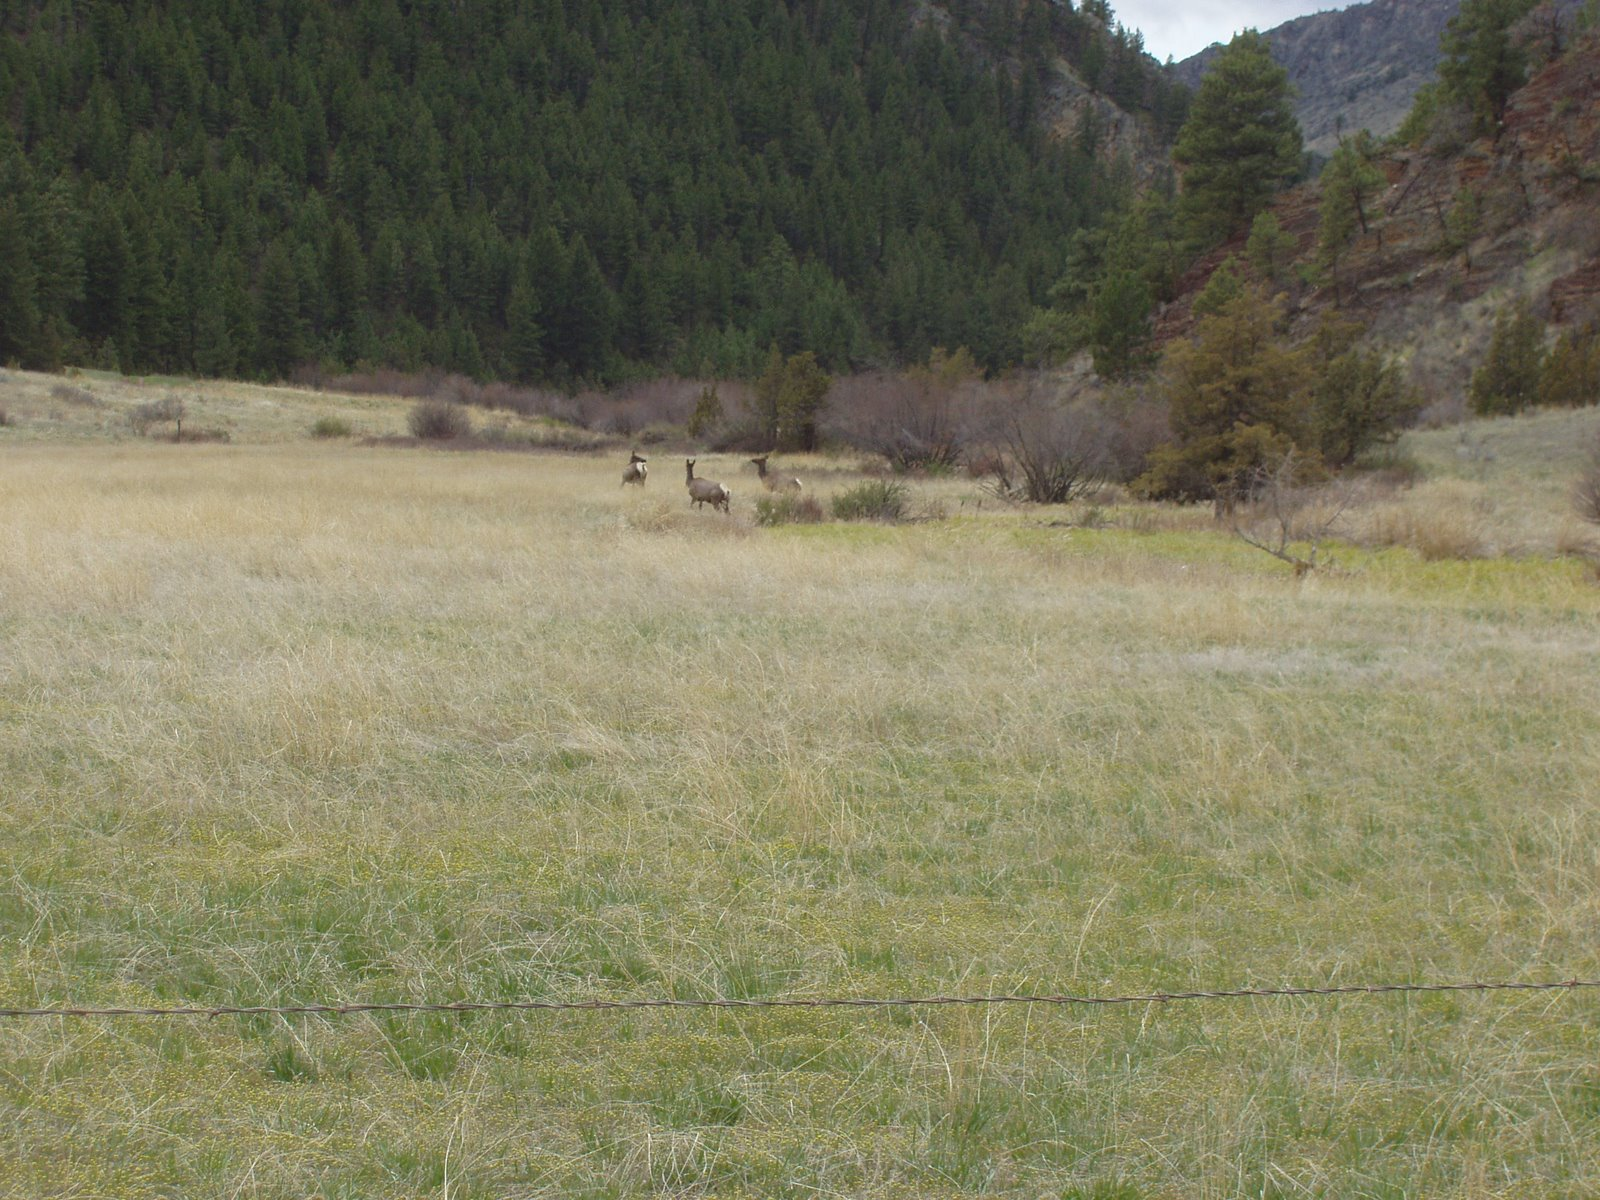 spotting elk on my b-day, gotta be a good sign.